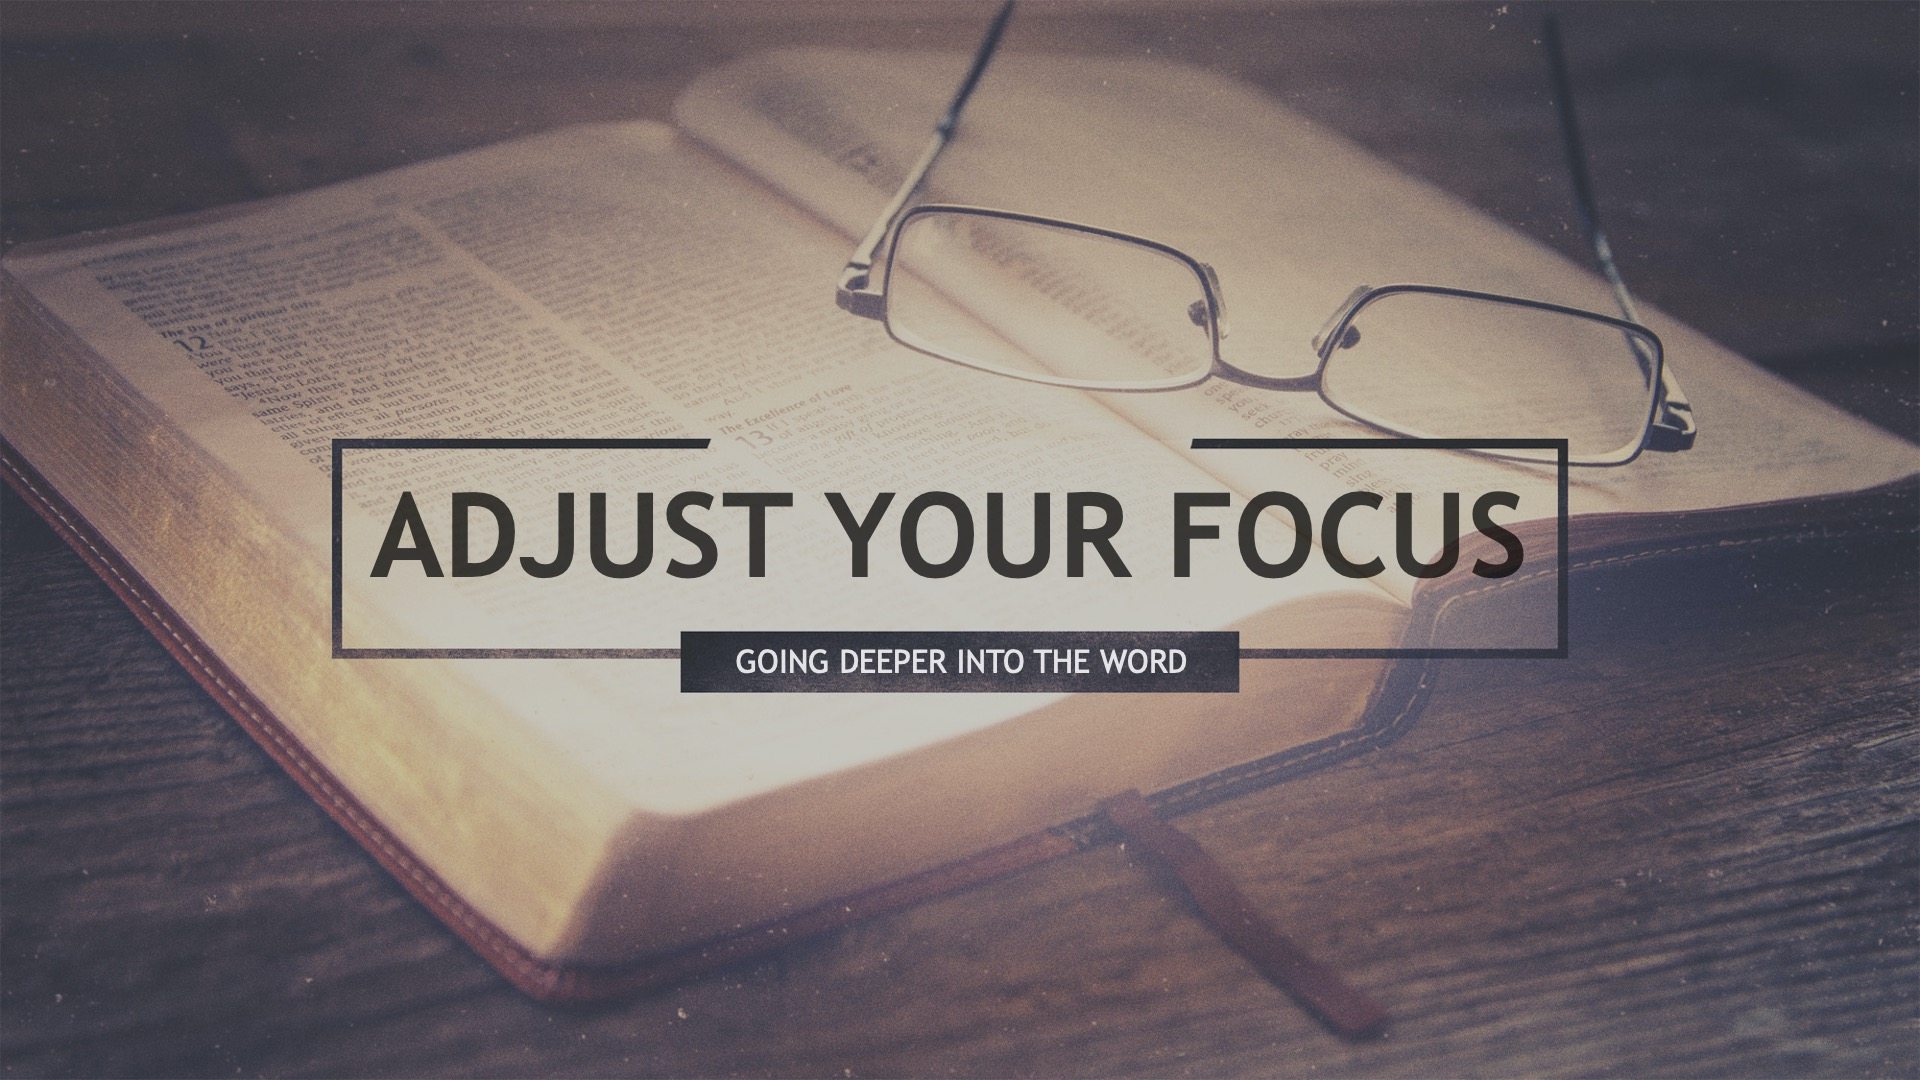 Adjust Your Focus Going Deeper Into The Word